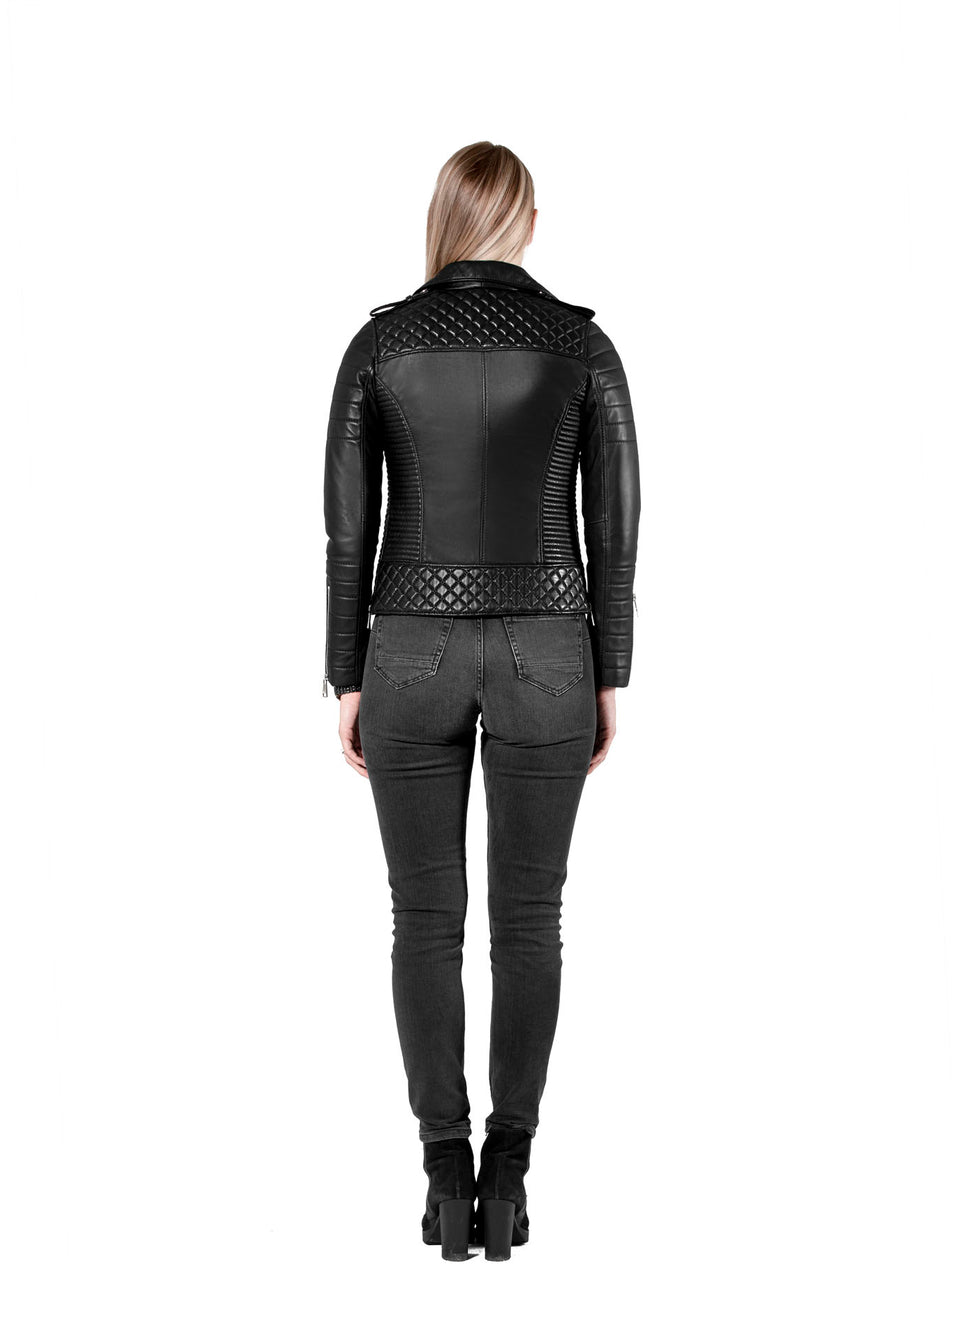 Elektra Black Leather Jacket For Women's